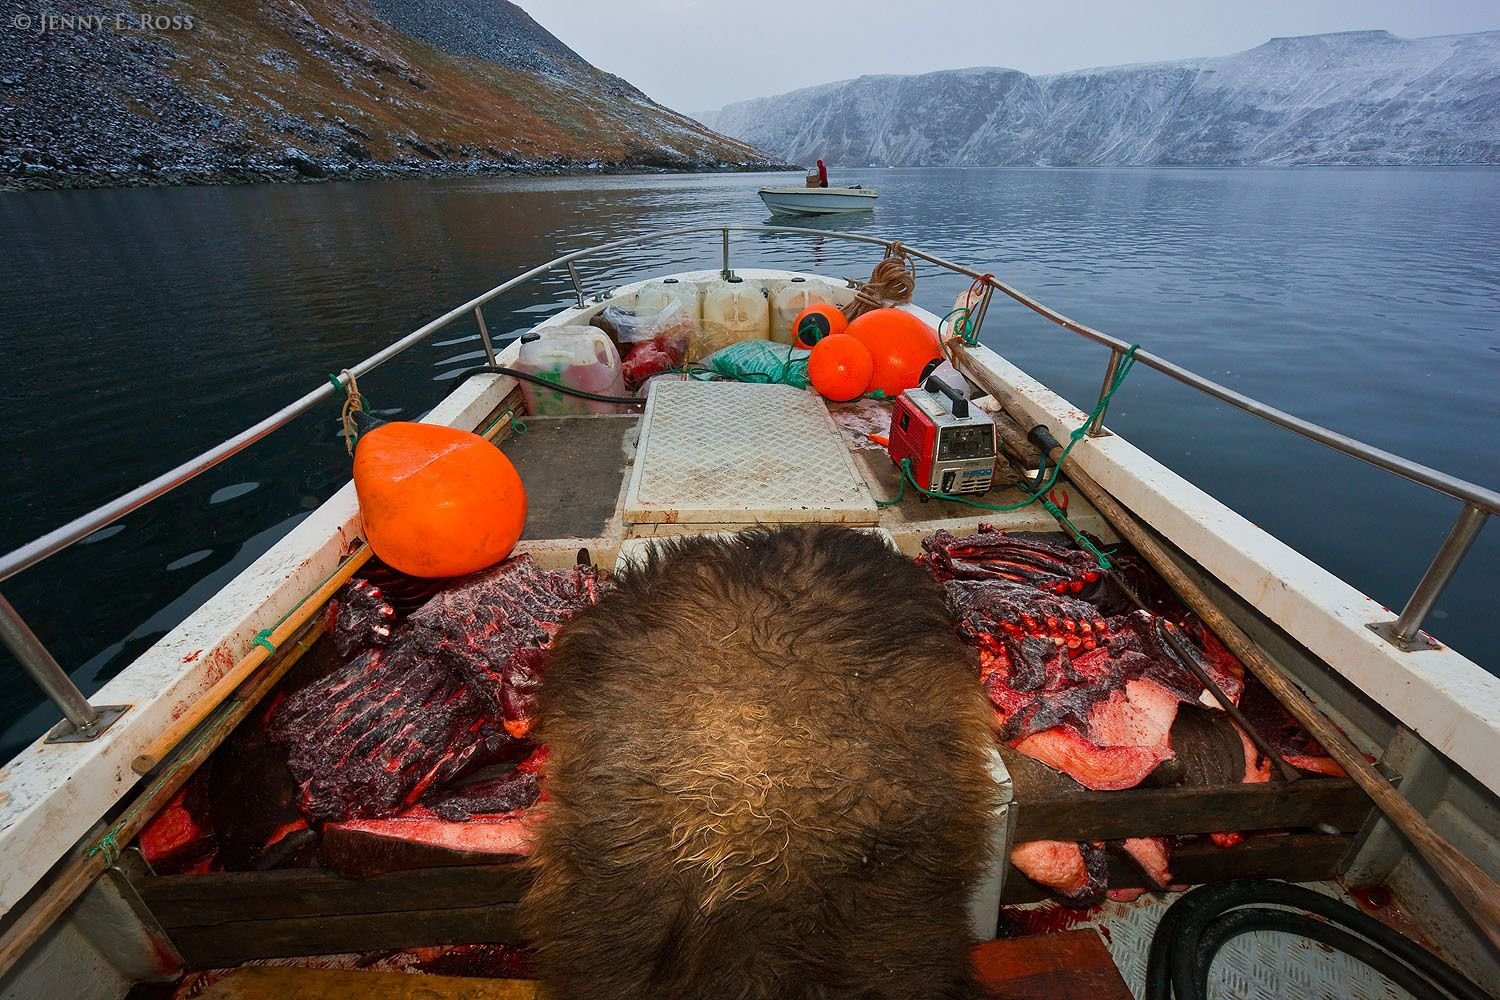 A small boat is filled with walrus and musk ox meat after a subsistence hunt by indigenous Greenlanders in remote Northwest Greenland.